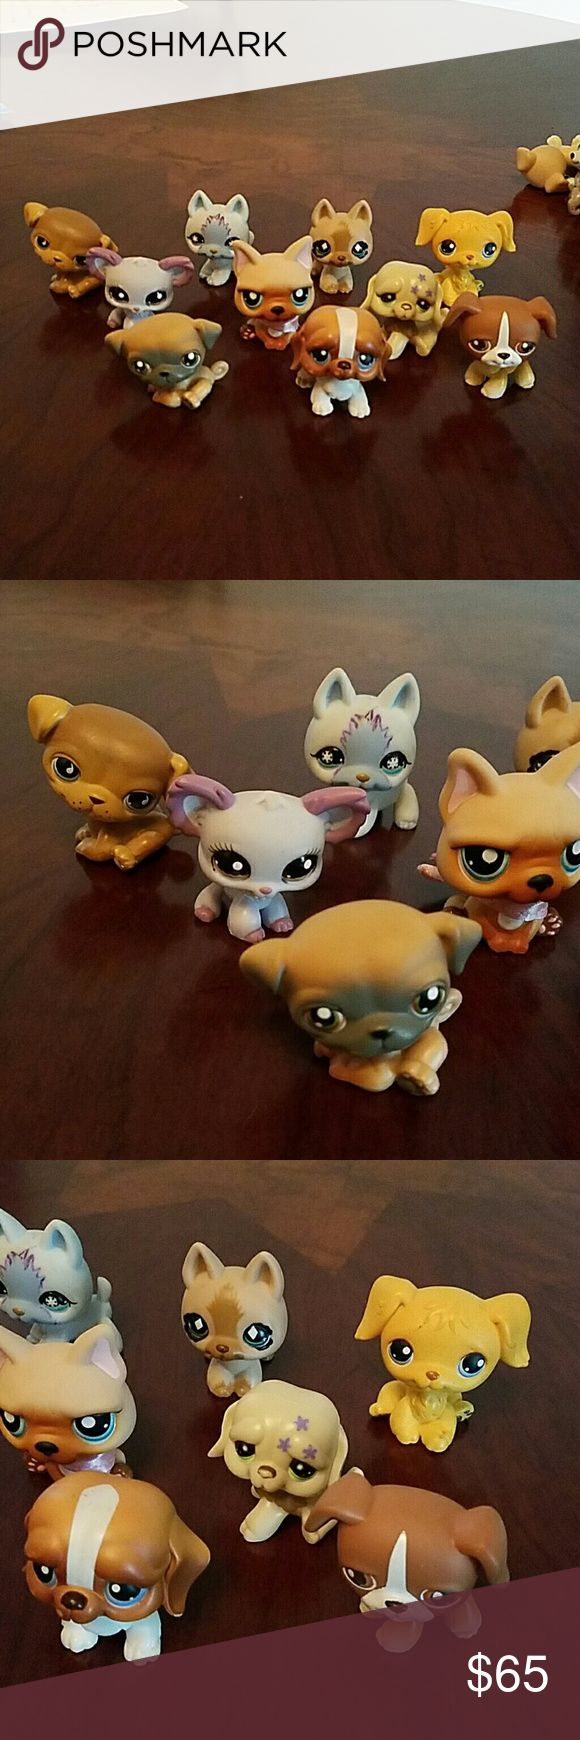 Lot #15 LPS dogs Littlest pet shop dogs. $3 each. Must but 5 or more. Check my page for tons more LPS. Let me know which ones you want and I will make a separate listing for you. Other